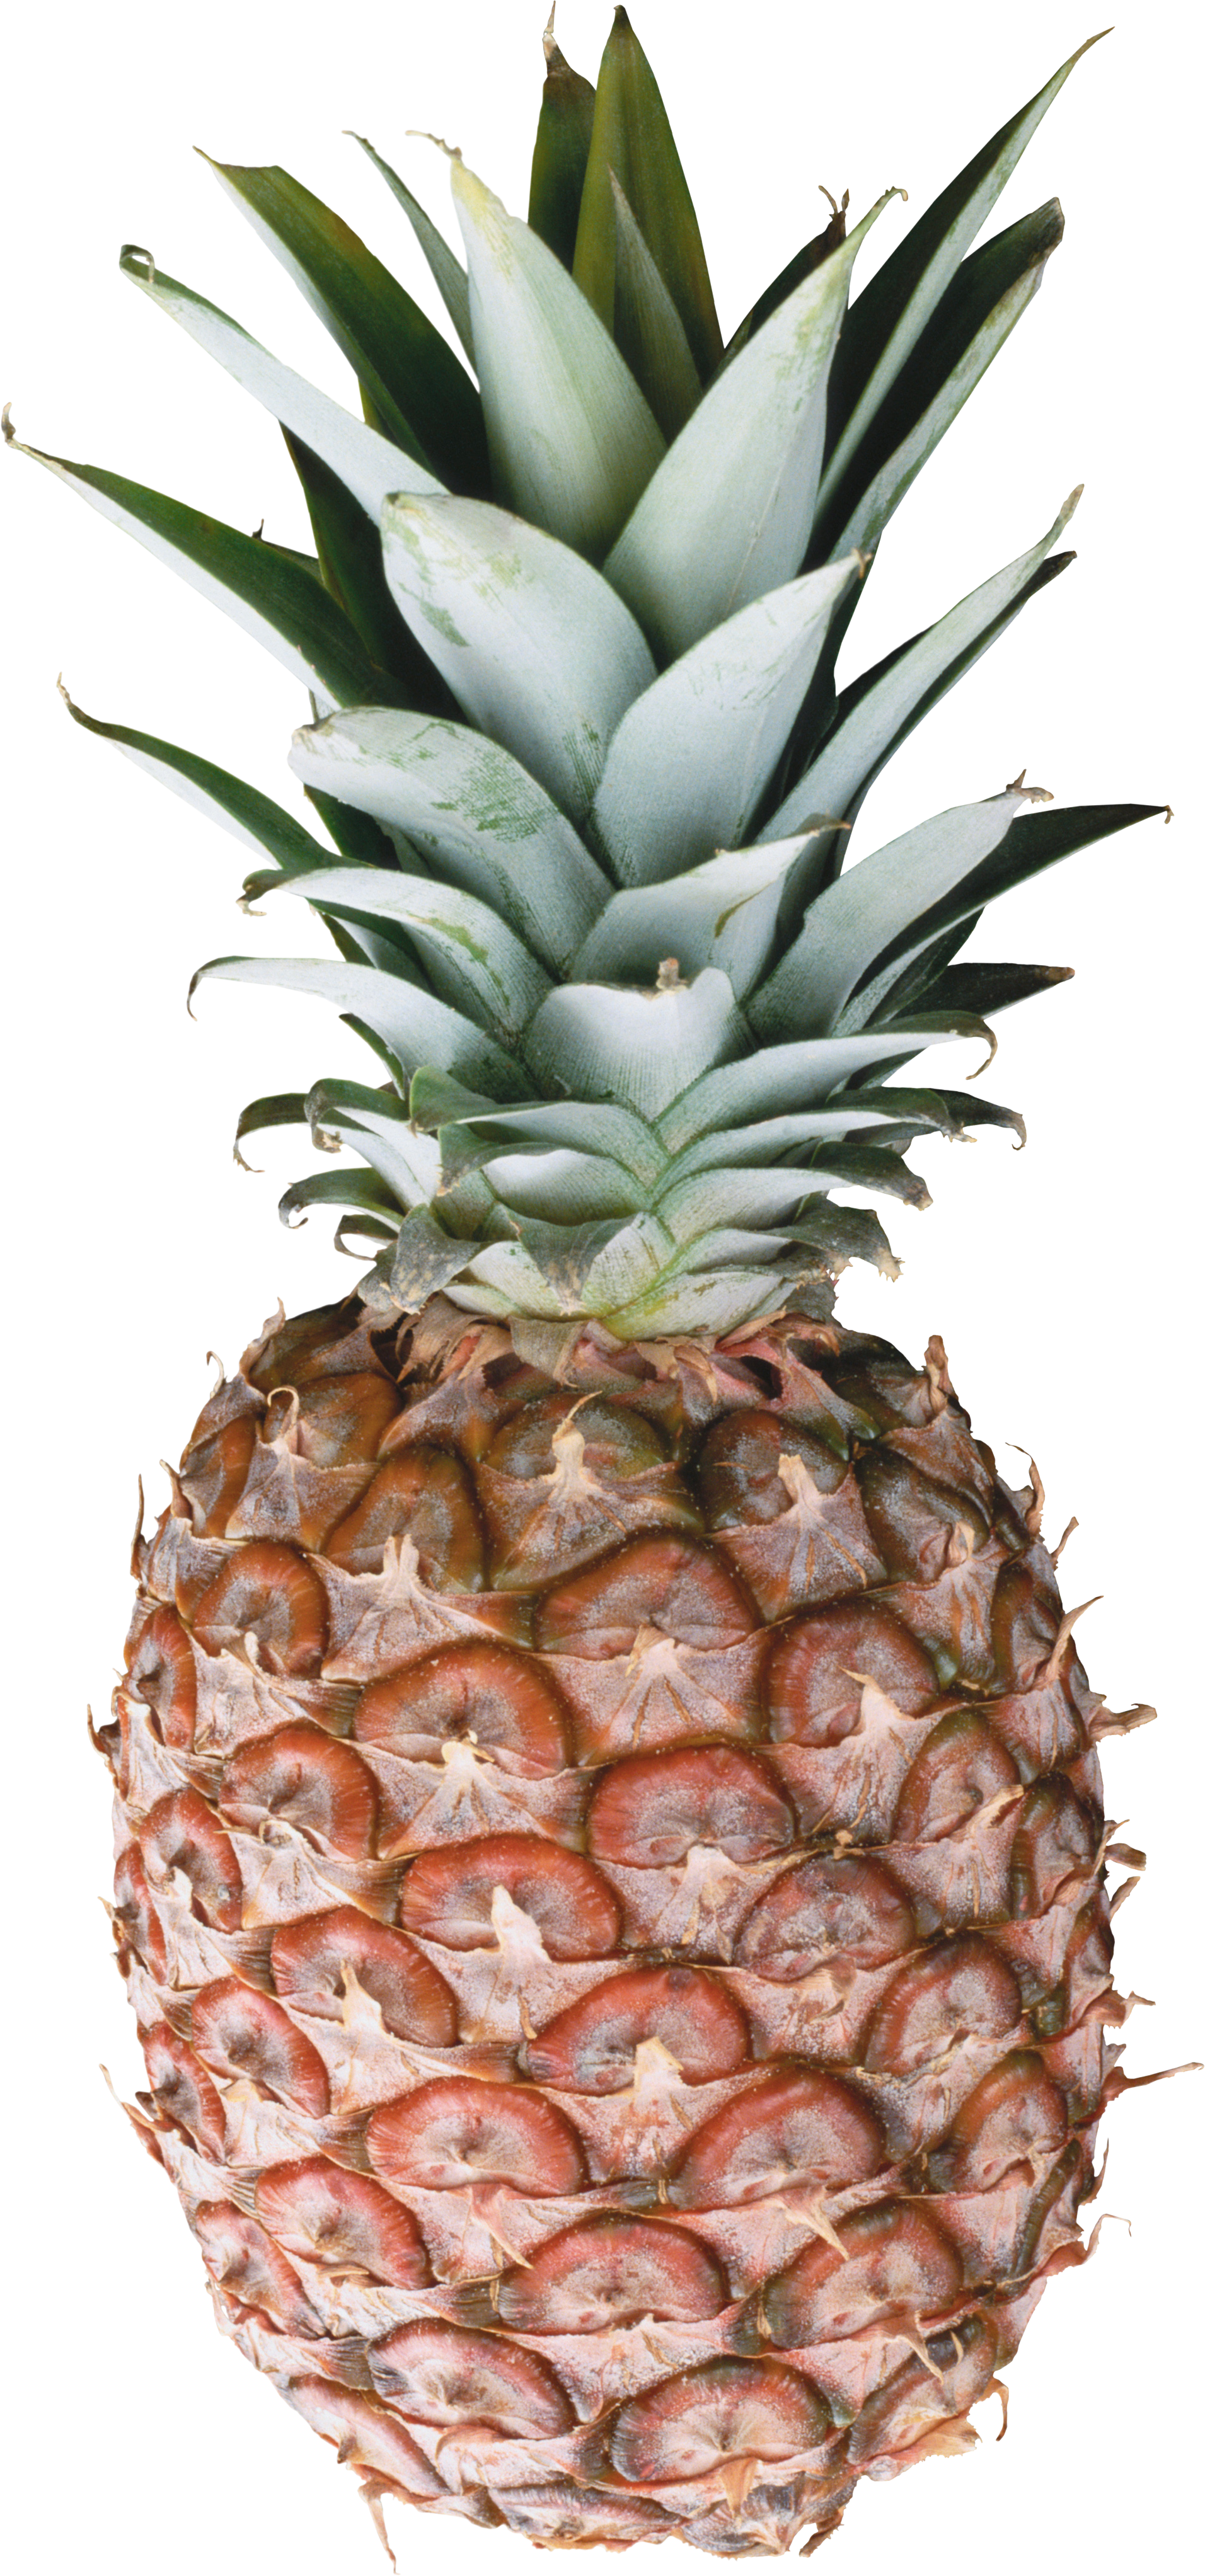 Pineapple PNG images free pictures download